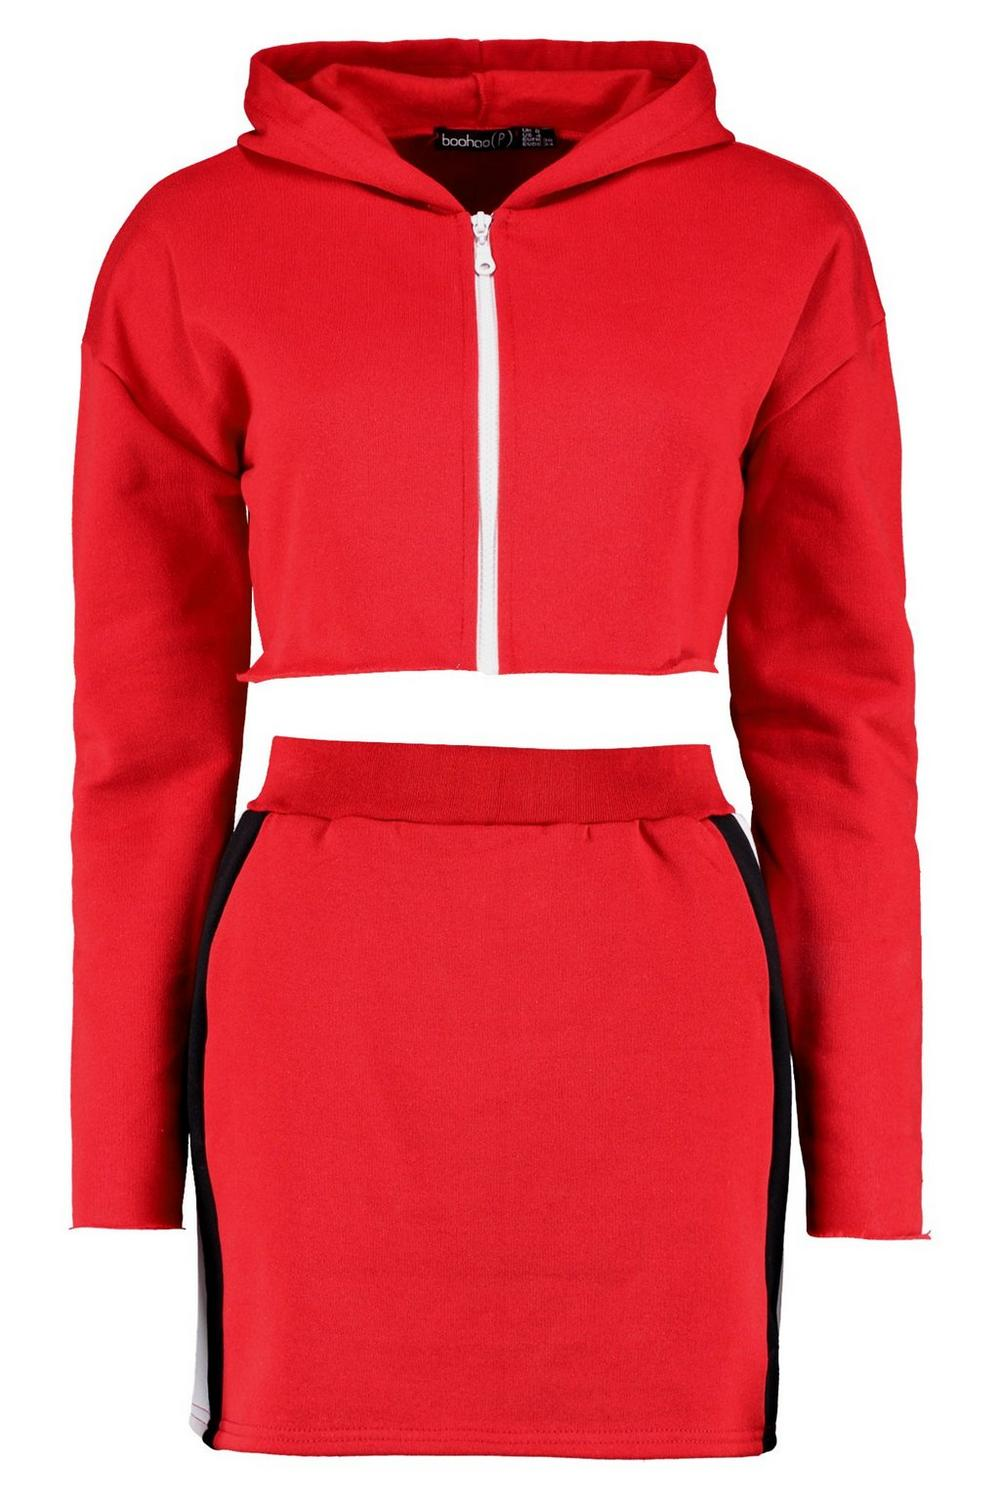 Ord Crop amp; Skirt Petite red Co Sweat FwqfUf